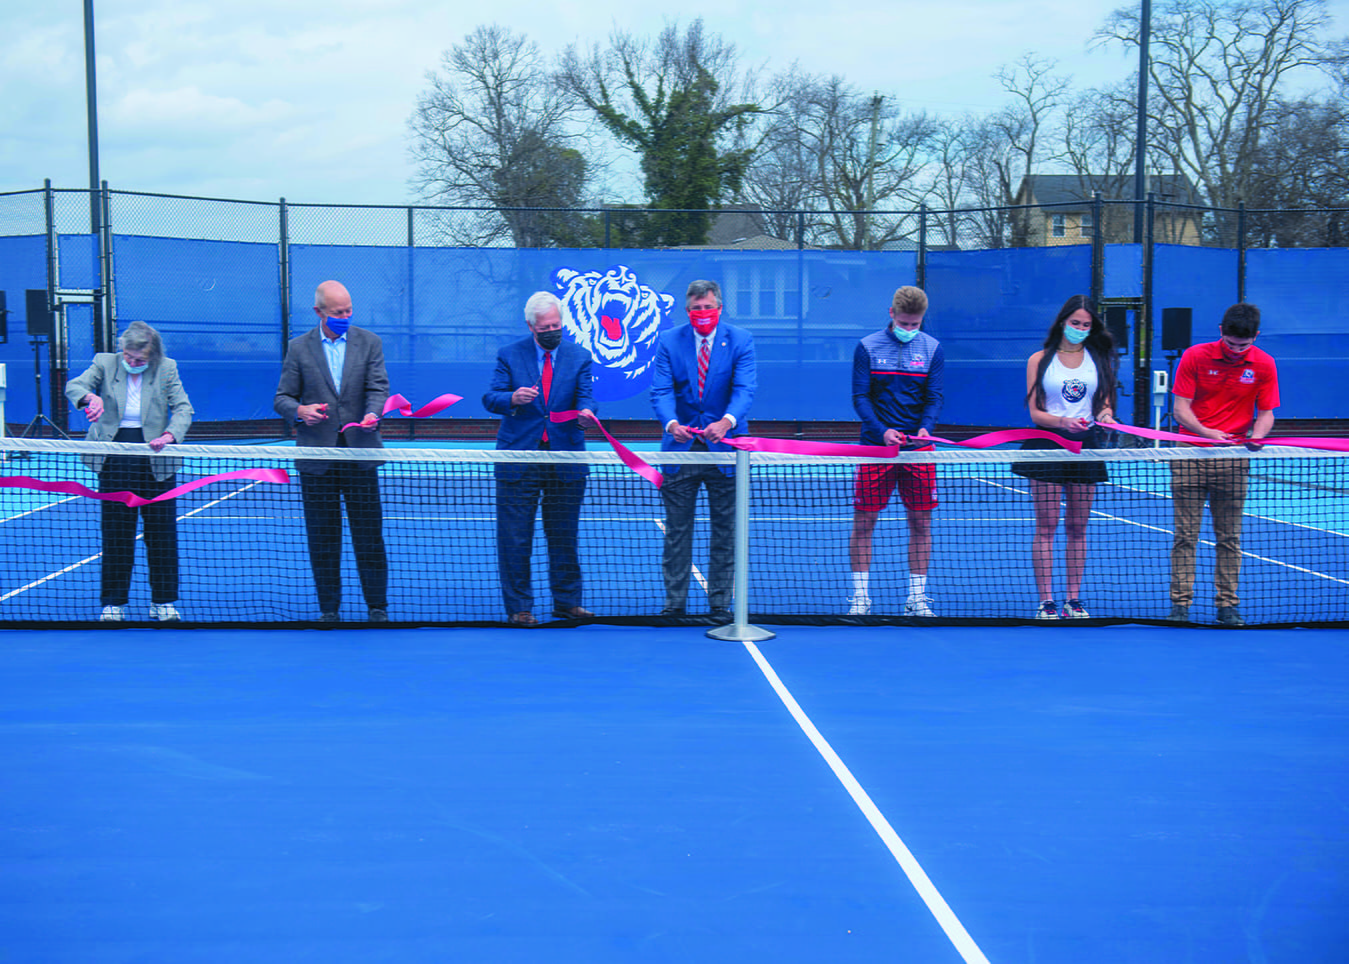 Pat Johnson, Bill DeLoache, Dr. Fisher, Scott Corley, Marko Illic, Somer Henry and Mauricio Antun cut the ribbon during the ceremony opening Belmont's new rooftop tennis facility at Belmont University in Nashville, Tennessee, March 10, 2021.